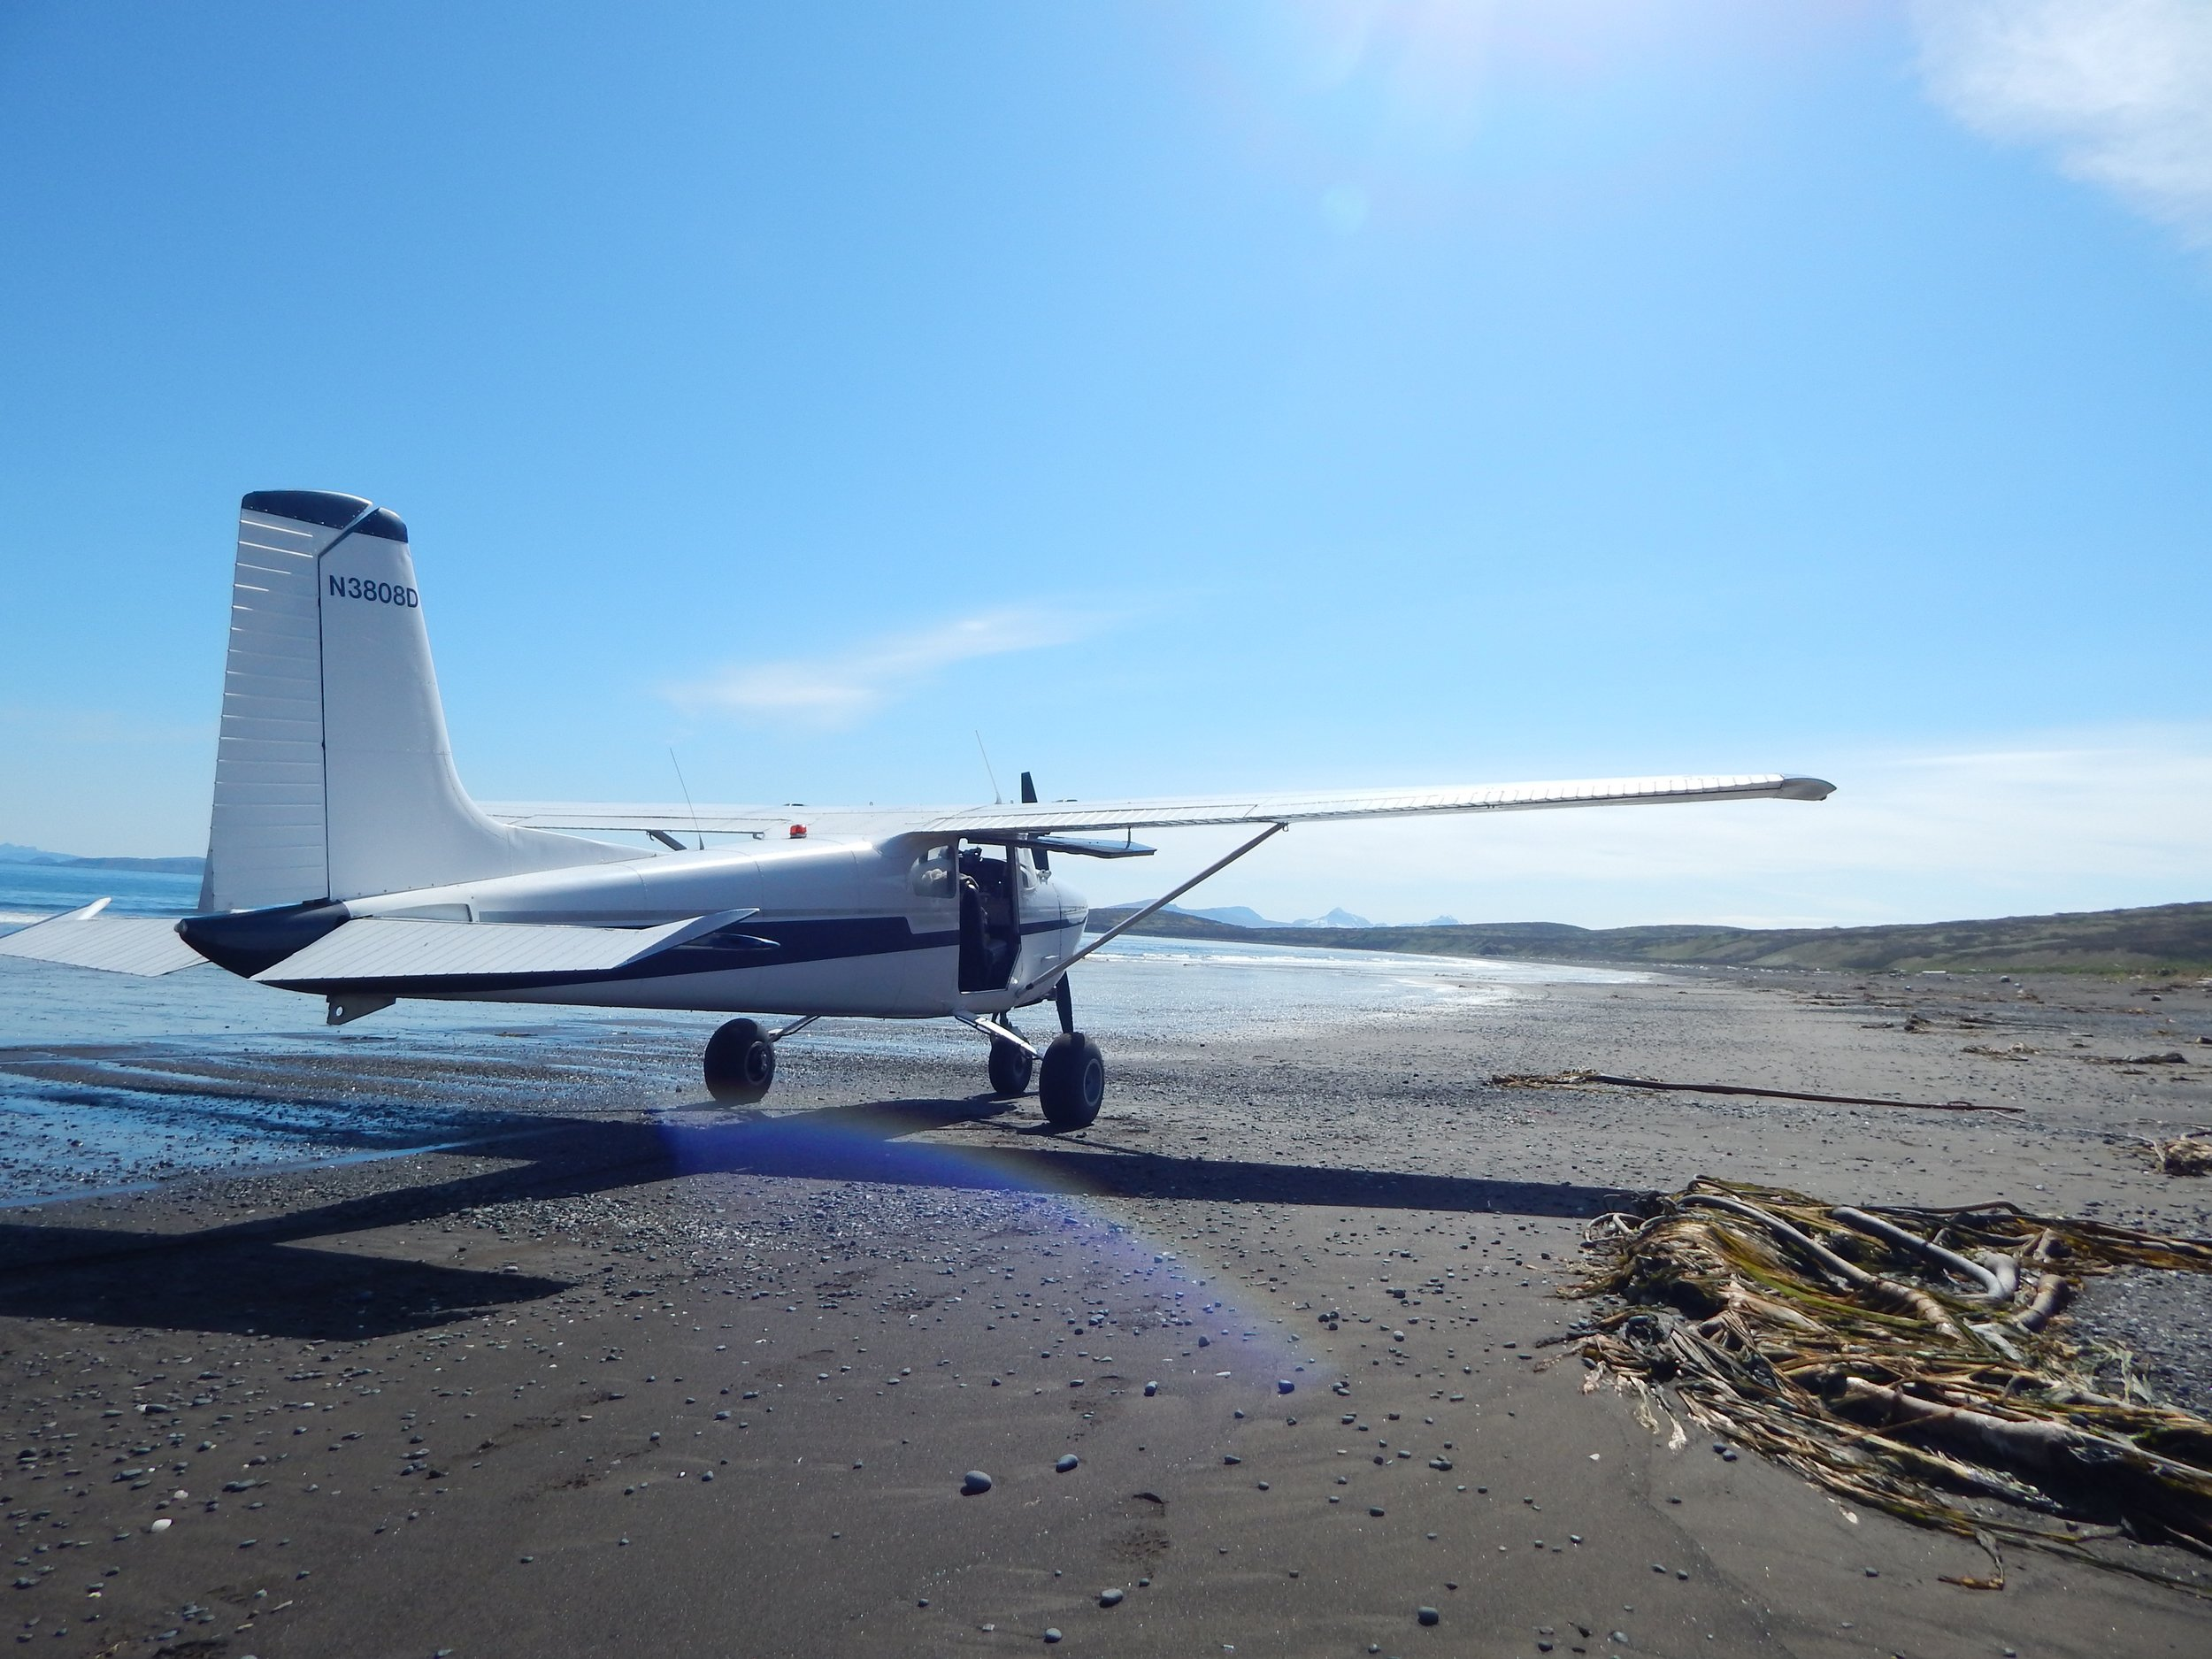 Fly907 | Alaska's Premier Custom Tours